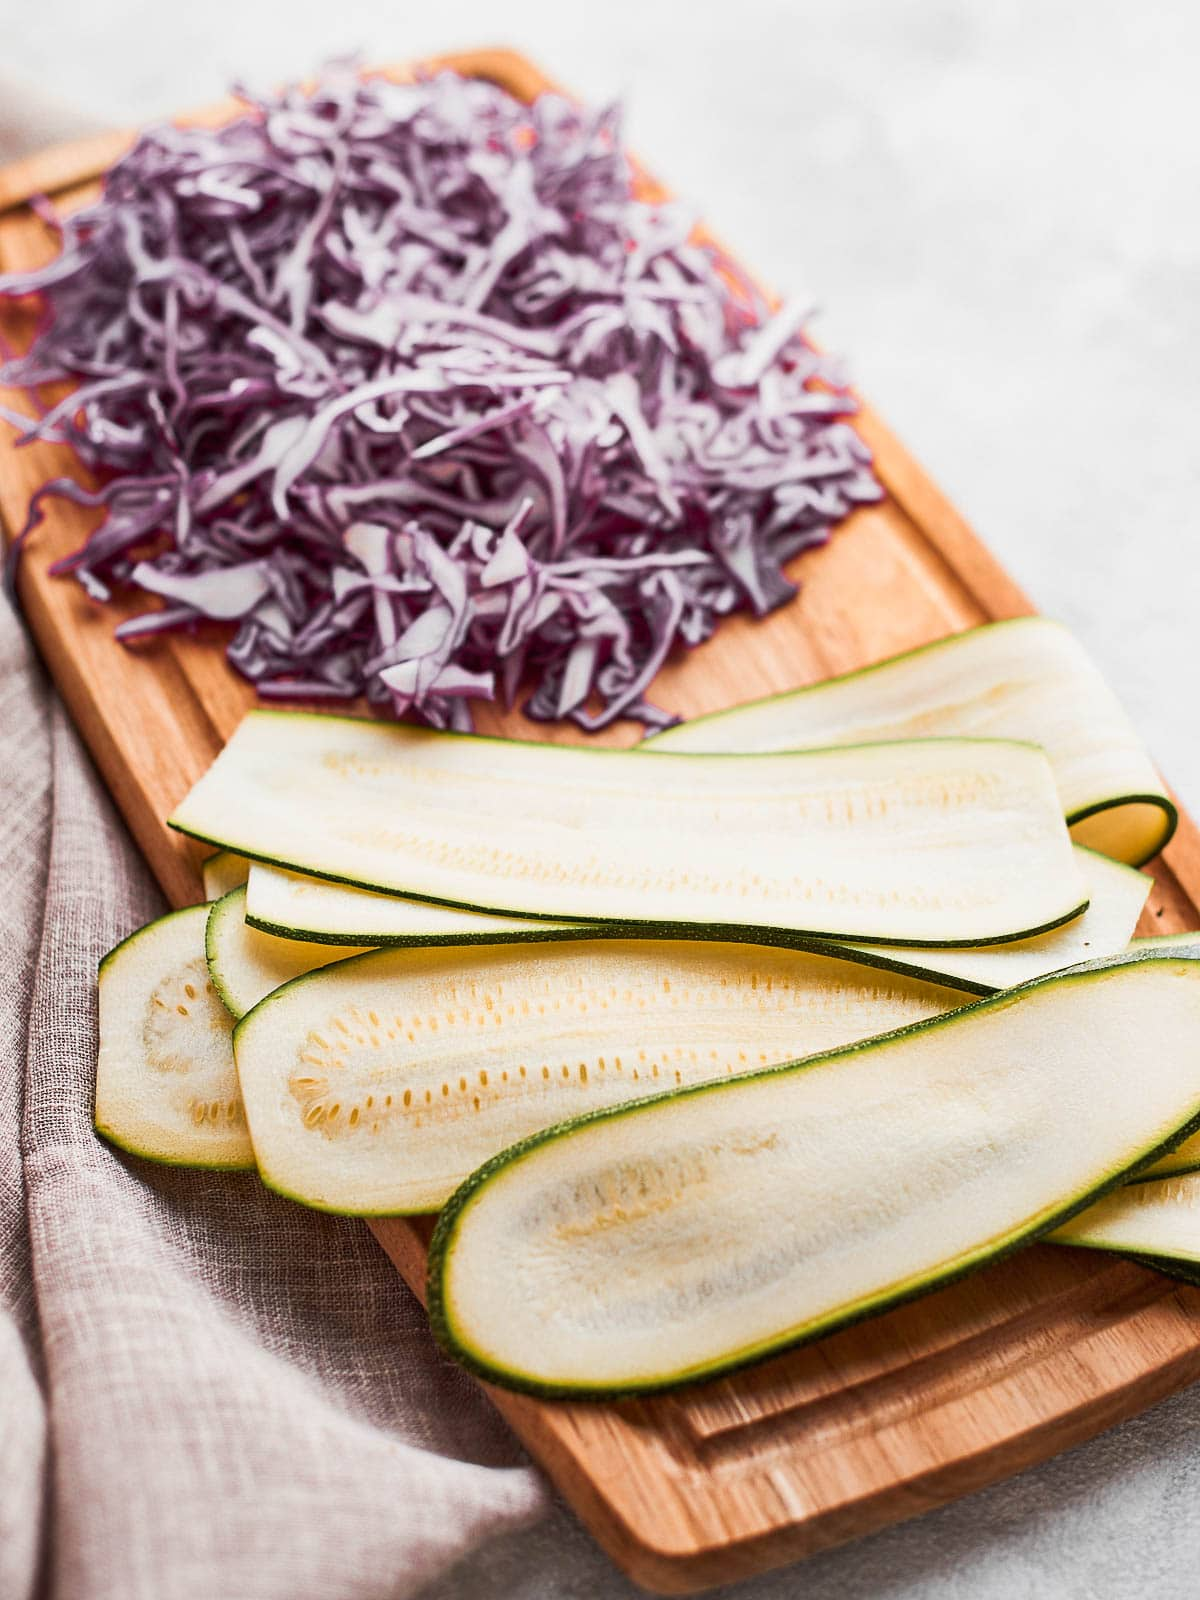 Sliced zucchini and cabbage ready to eat